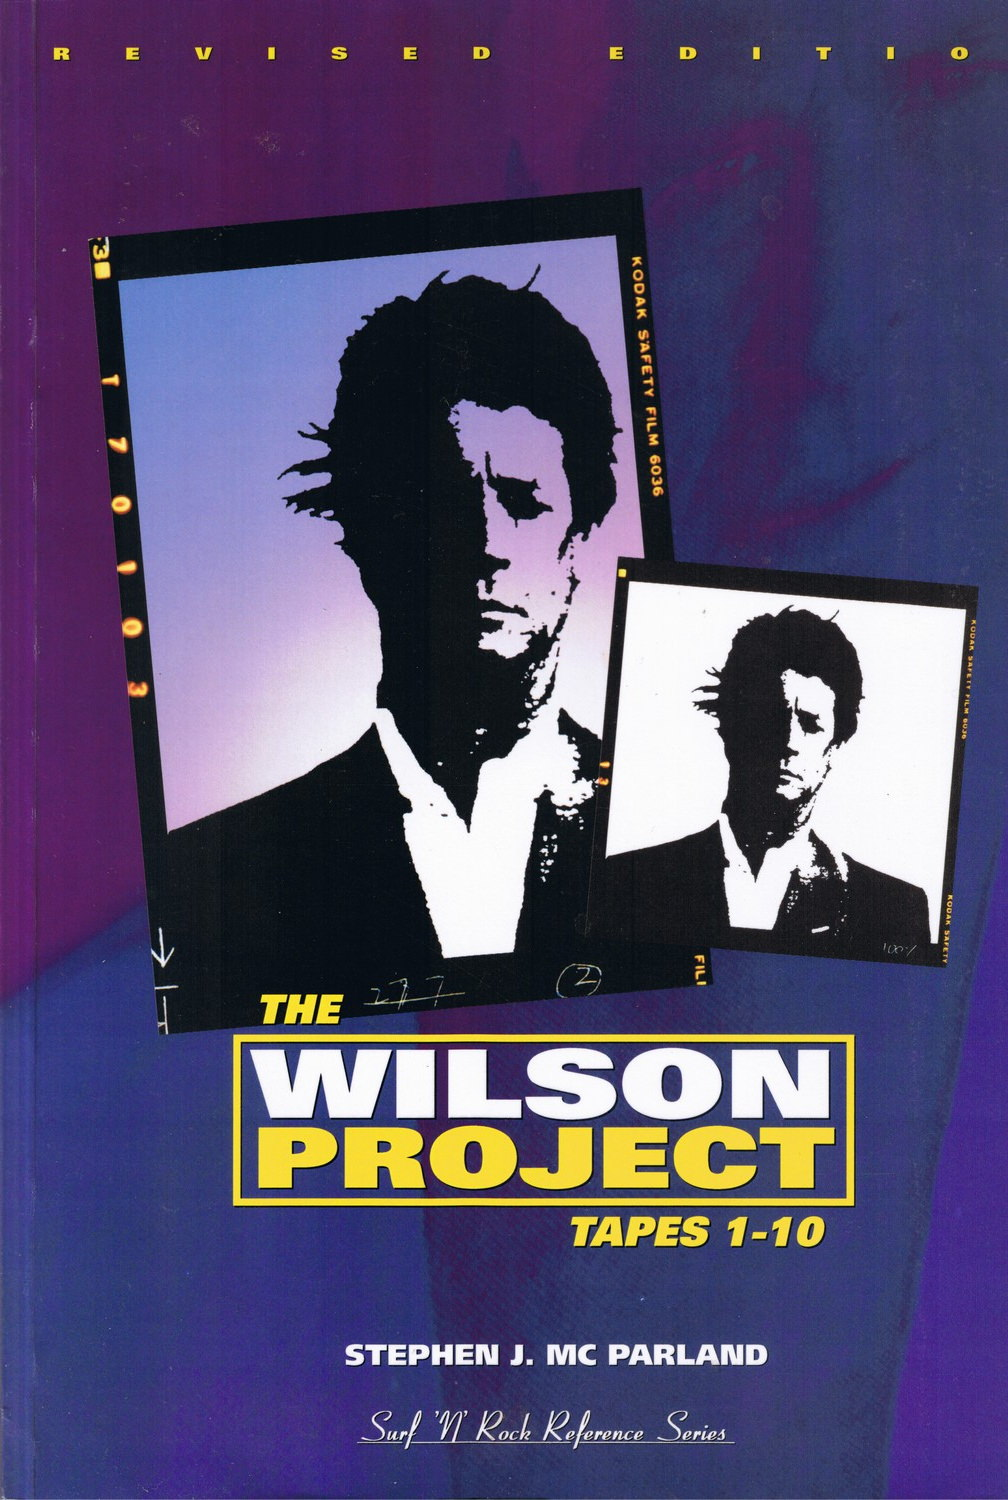 The Wilson Project Tapes 1-10 cover